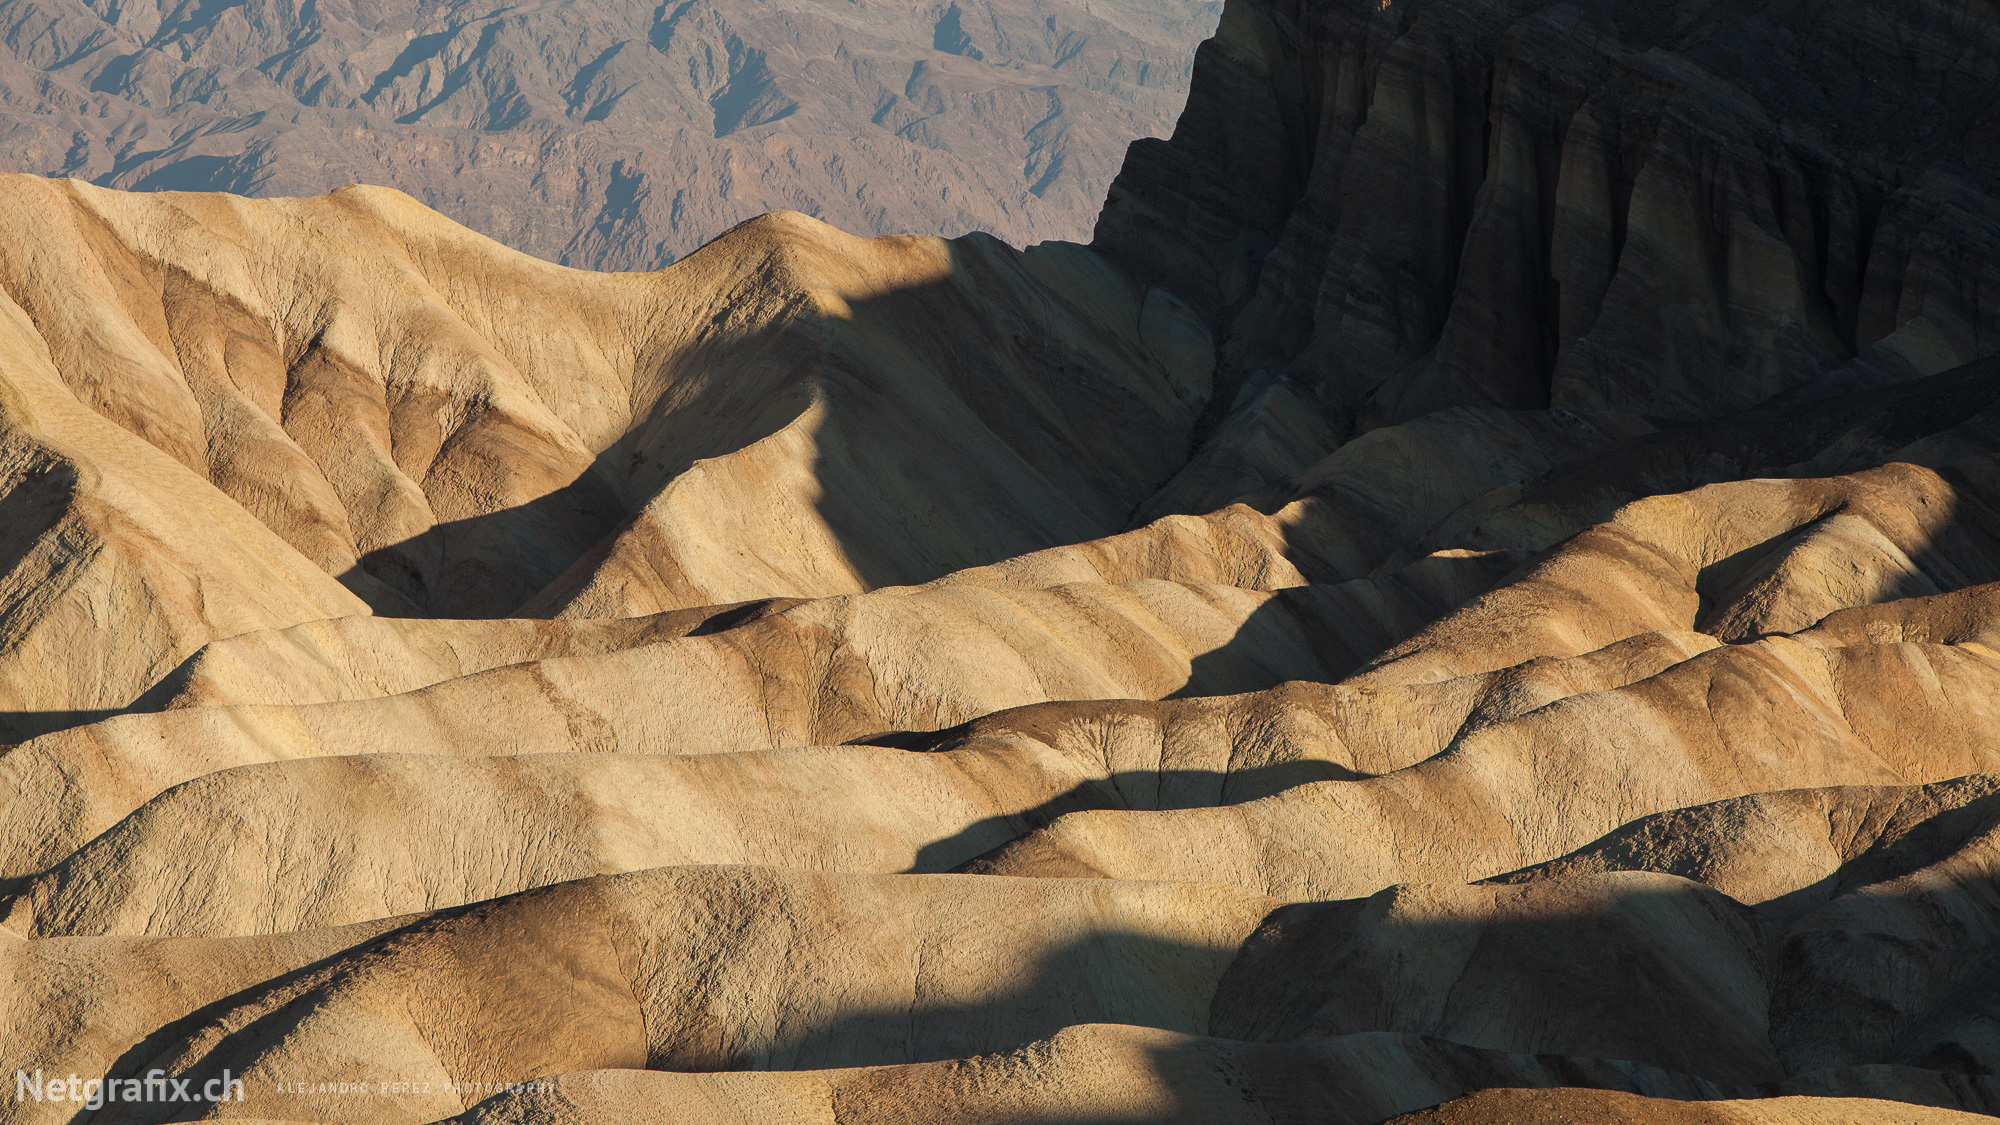 Zabriskie point - Death Valley CA